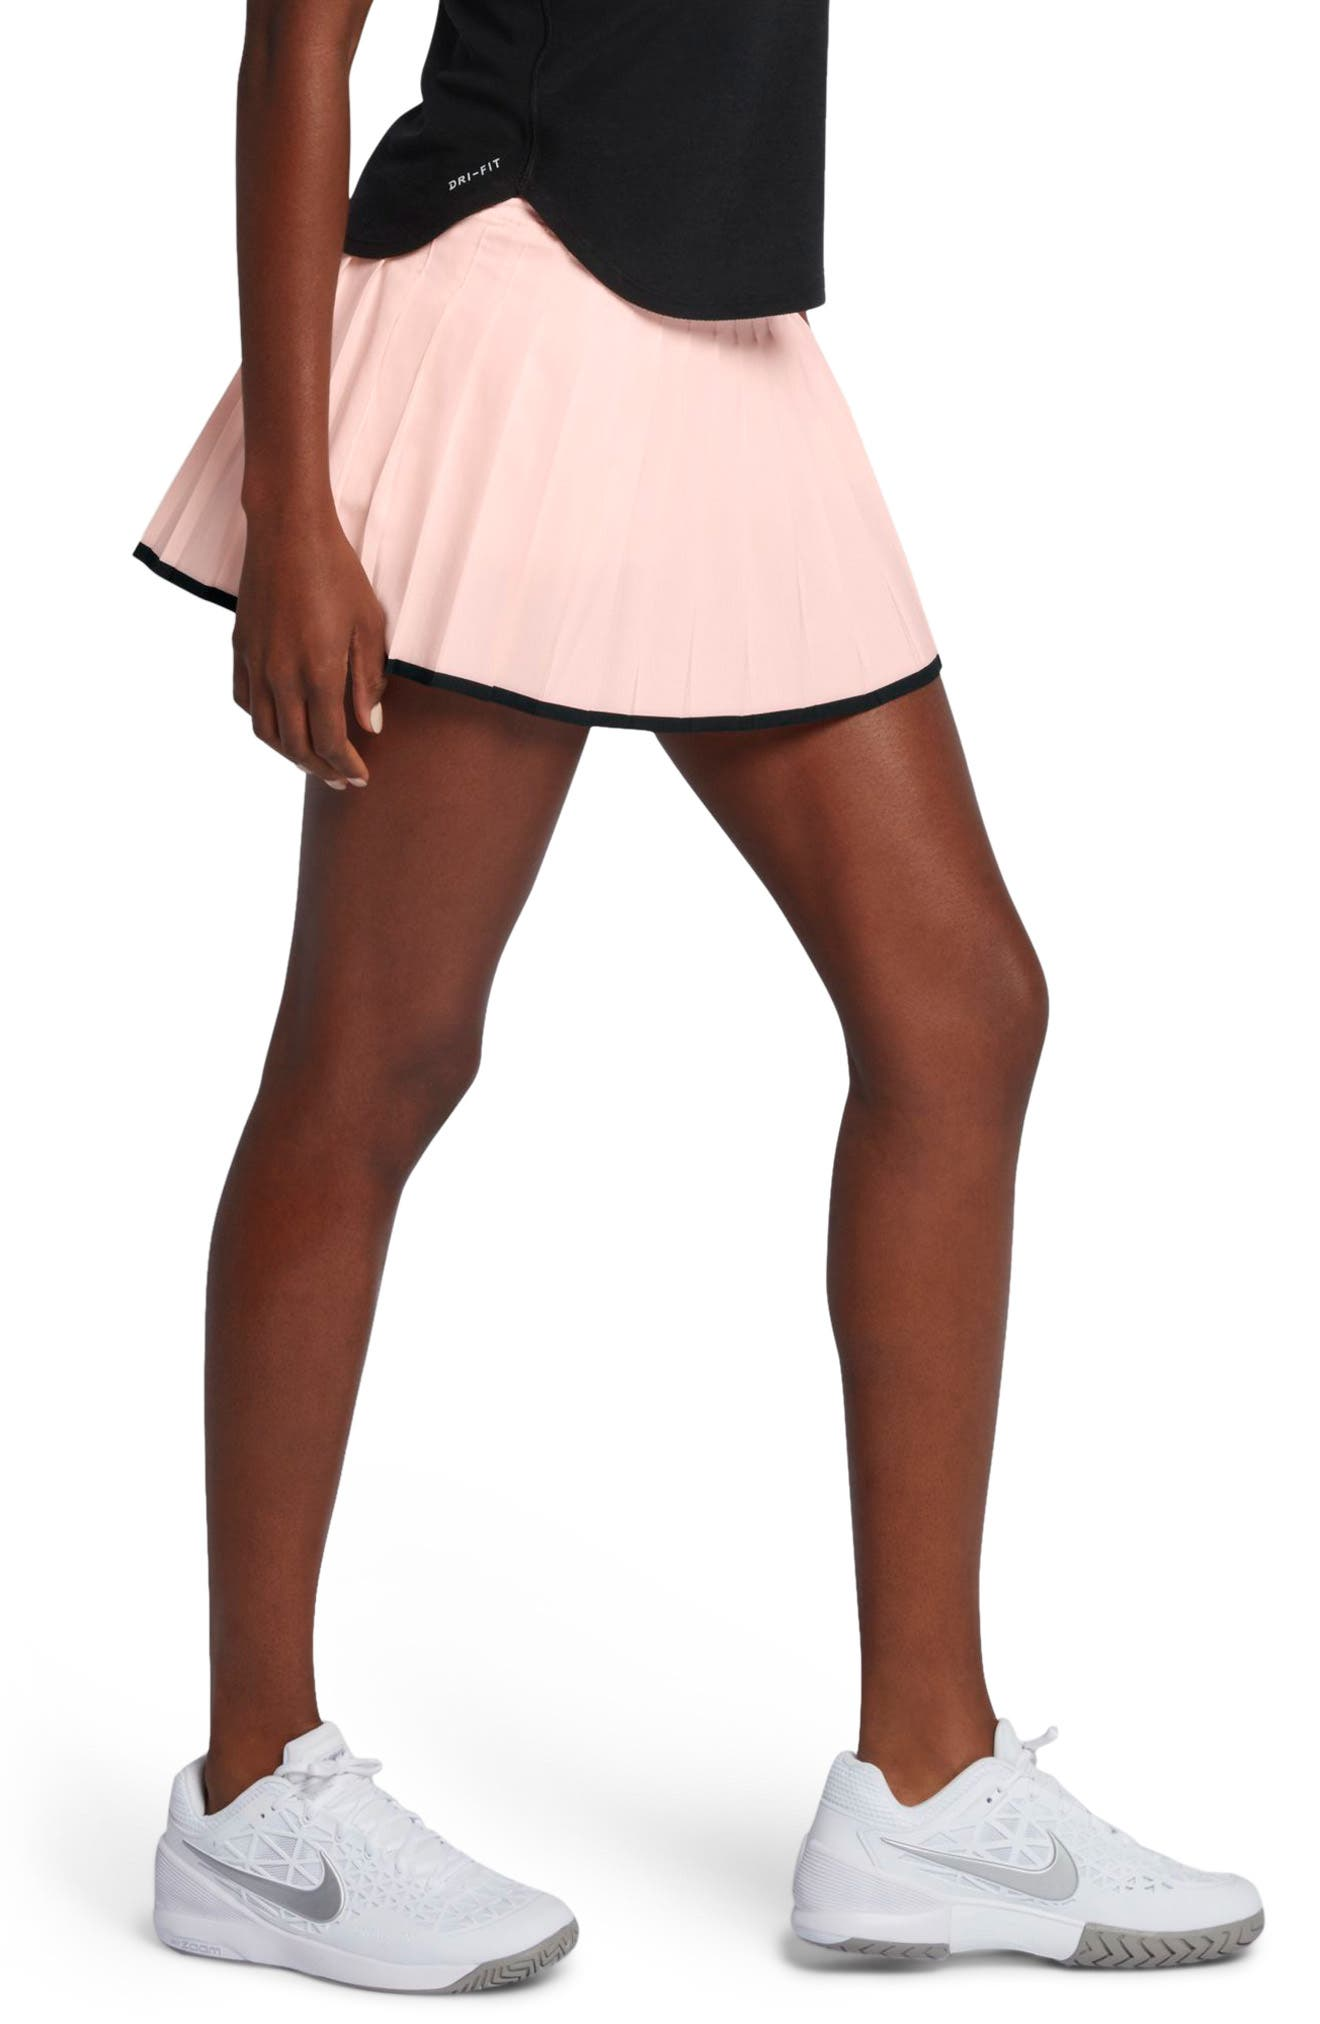 Women's Court Victory Tennis Skirt,                             Alternate thumbnail 3, color,                             959